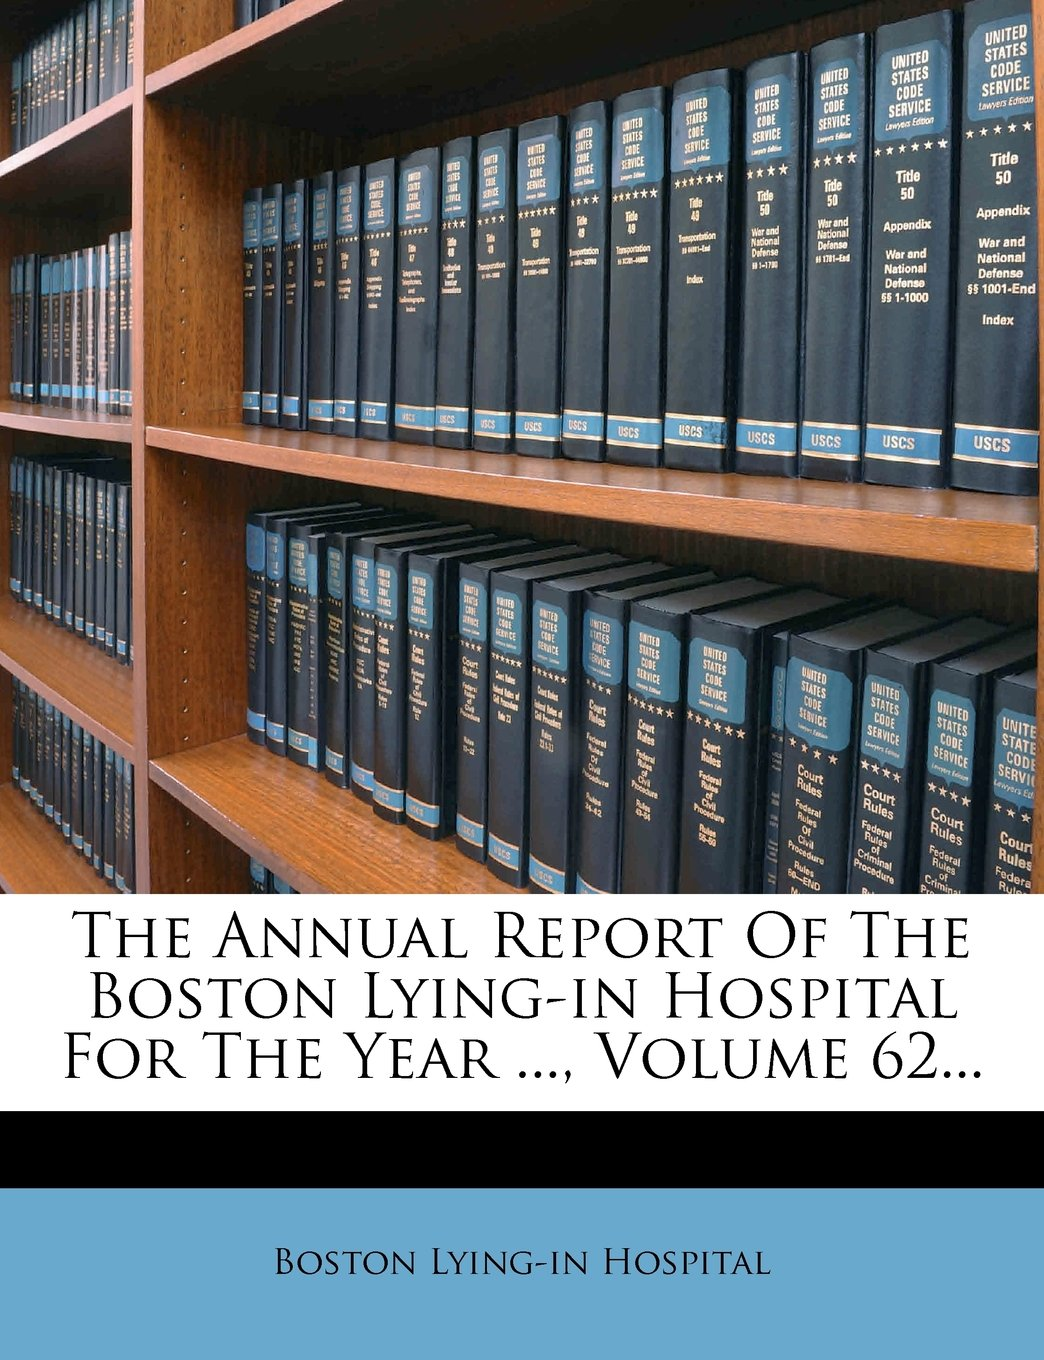 The Annual Report Of The Boston Lying-in Hospital For The Year ..., Volume 62... ebook